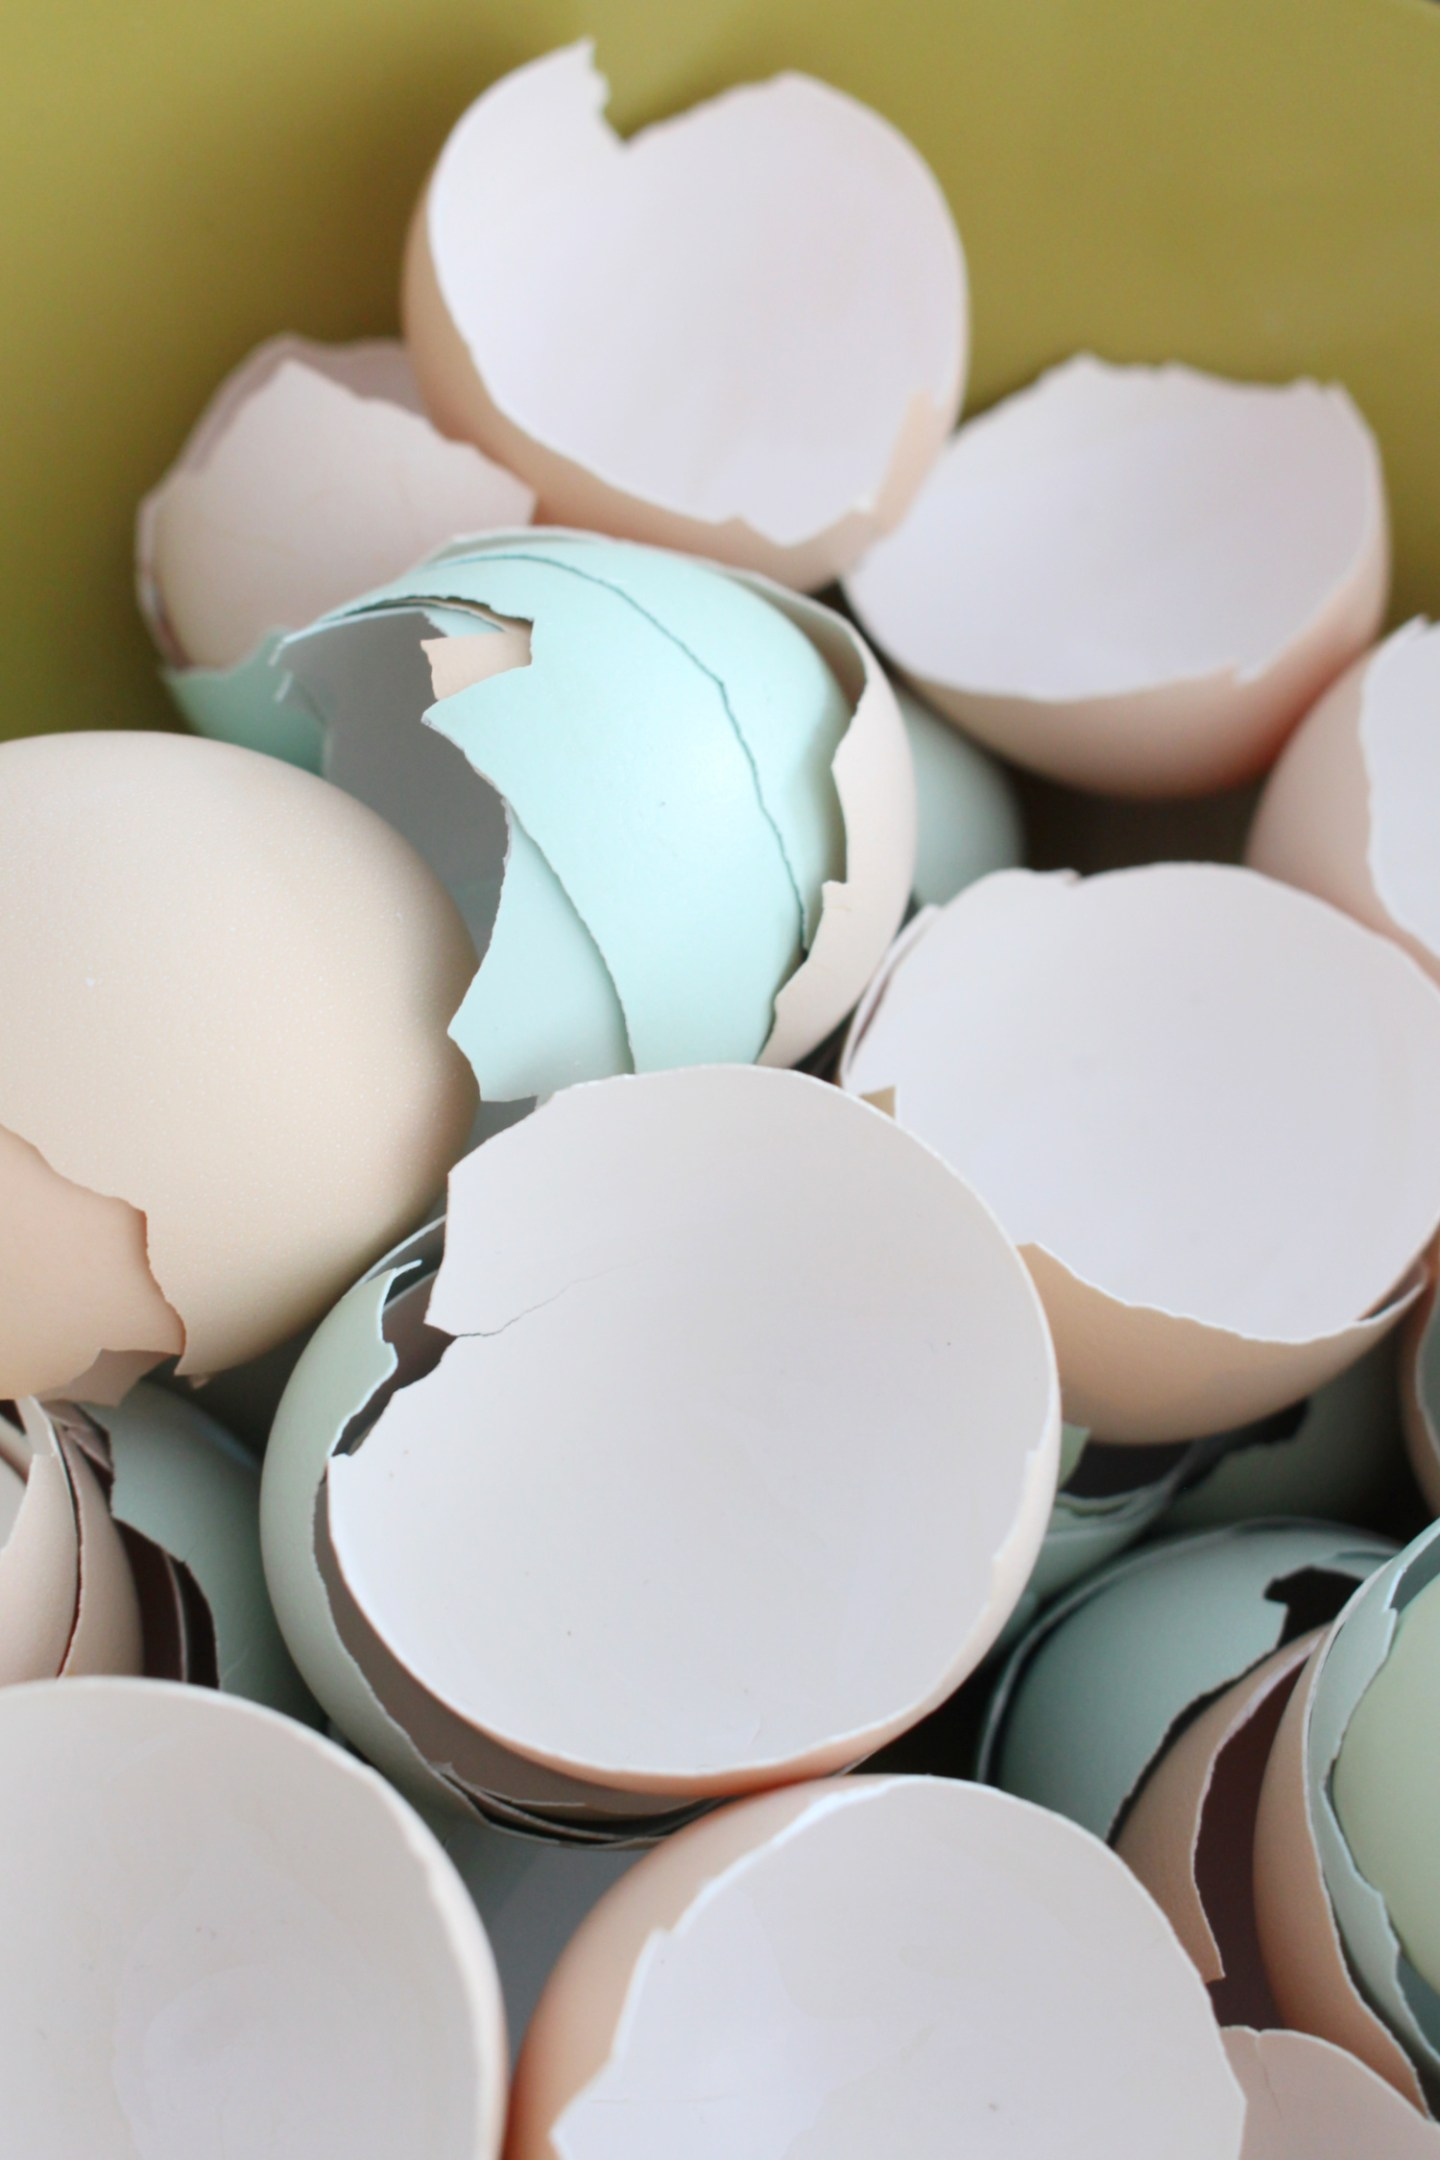 Crafts to Make with Egg Shells